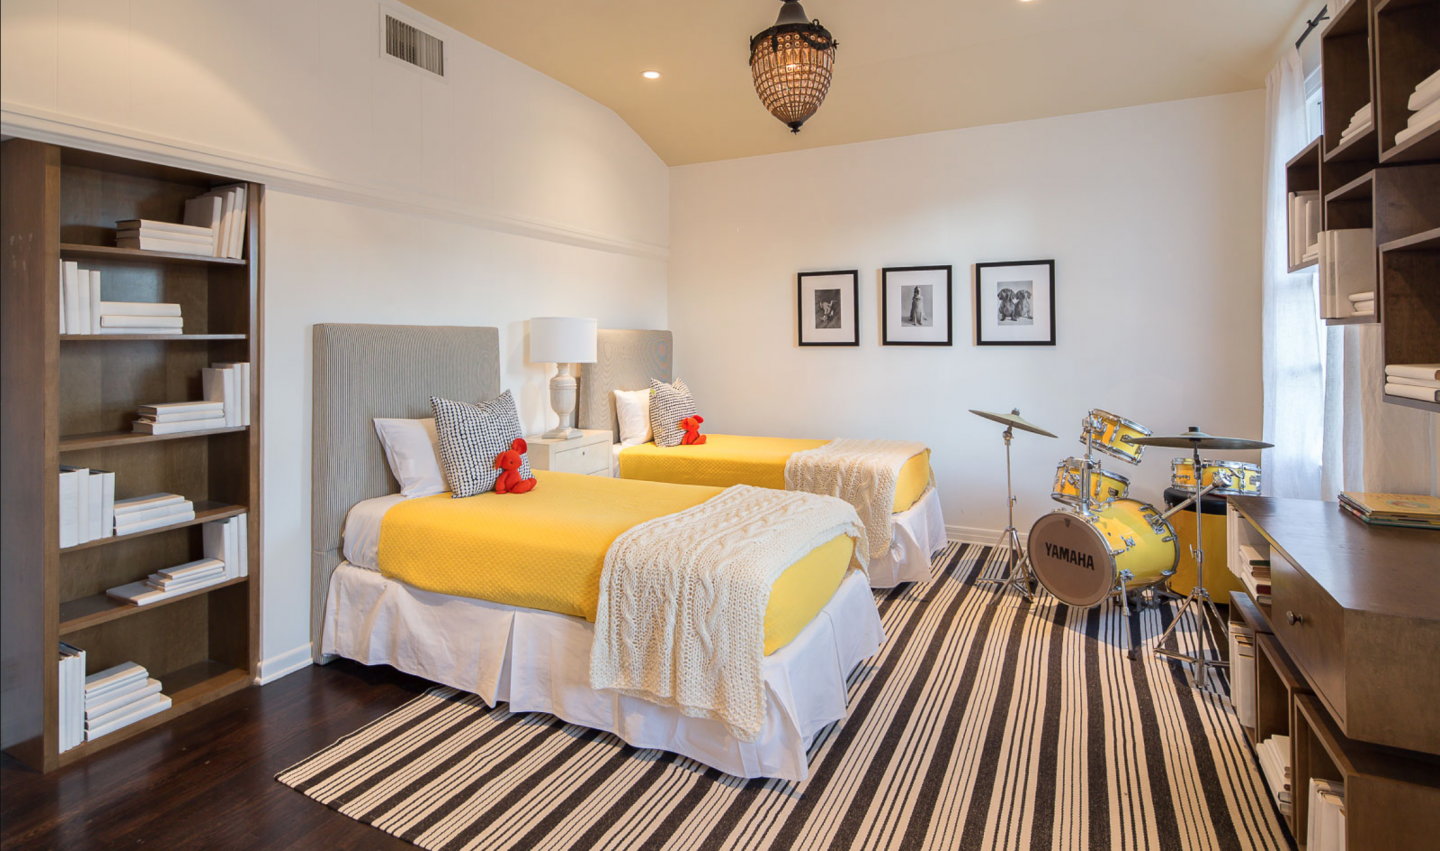 Five bedrooms grace the first floor, including this colorful guest room with matching drums